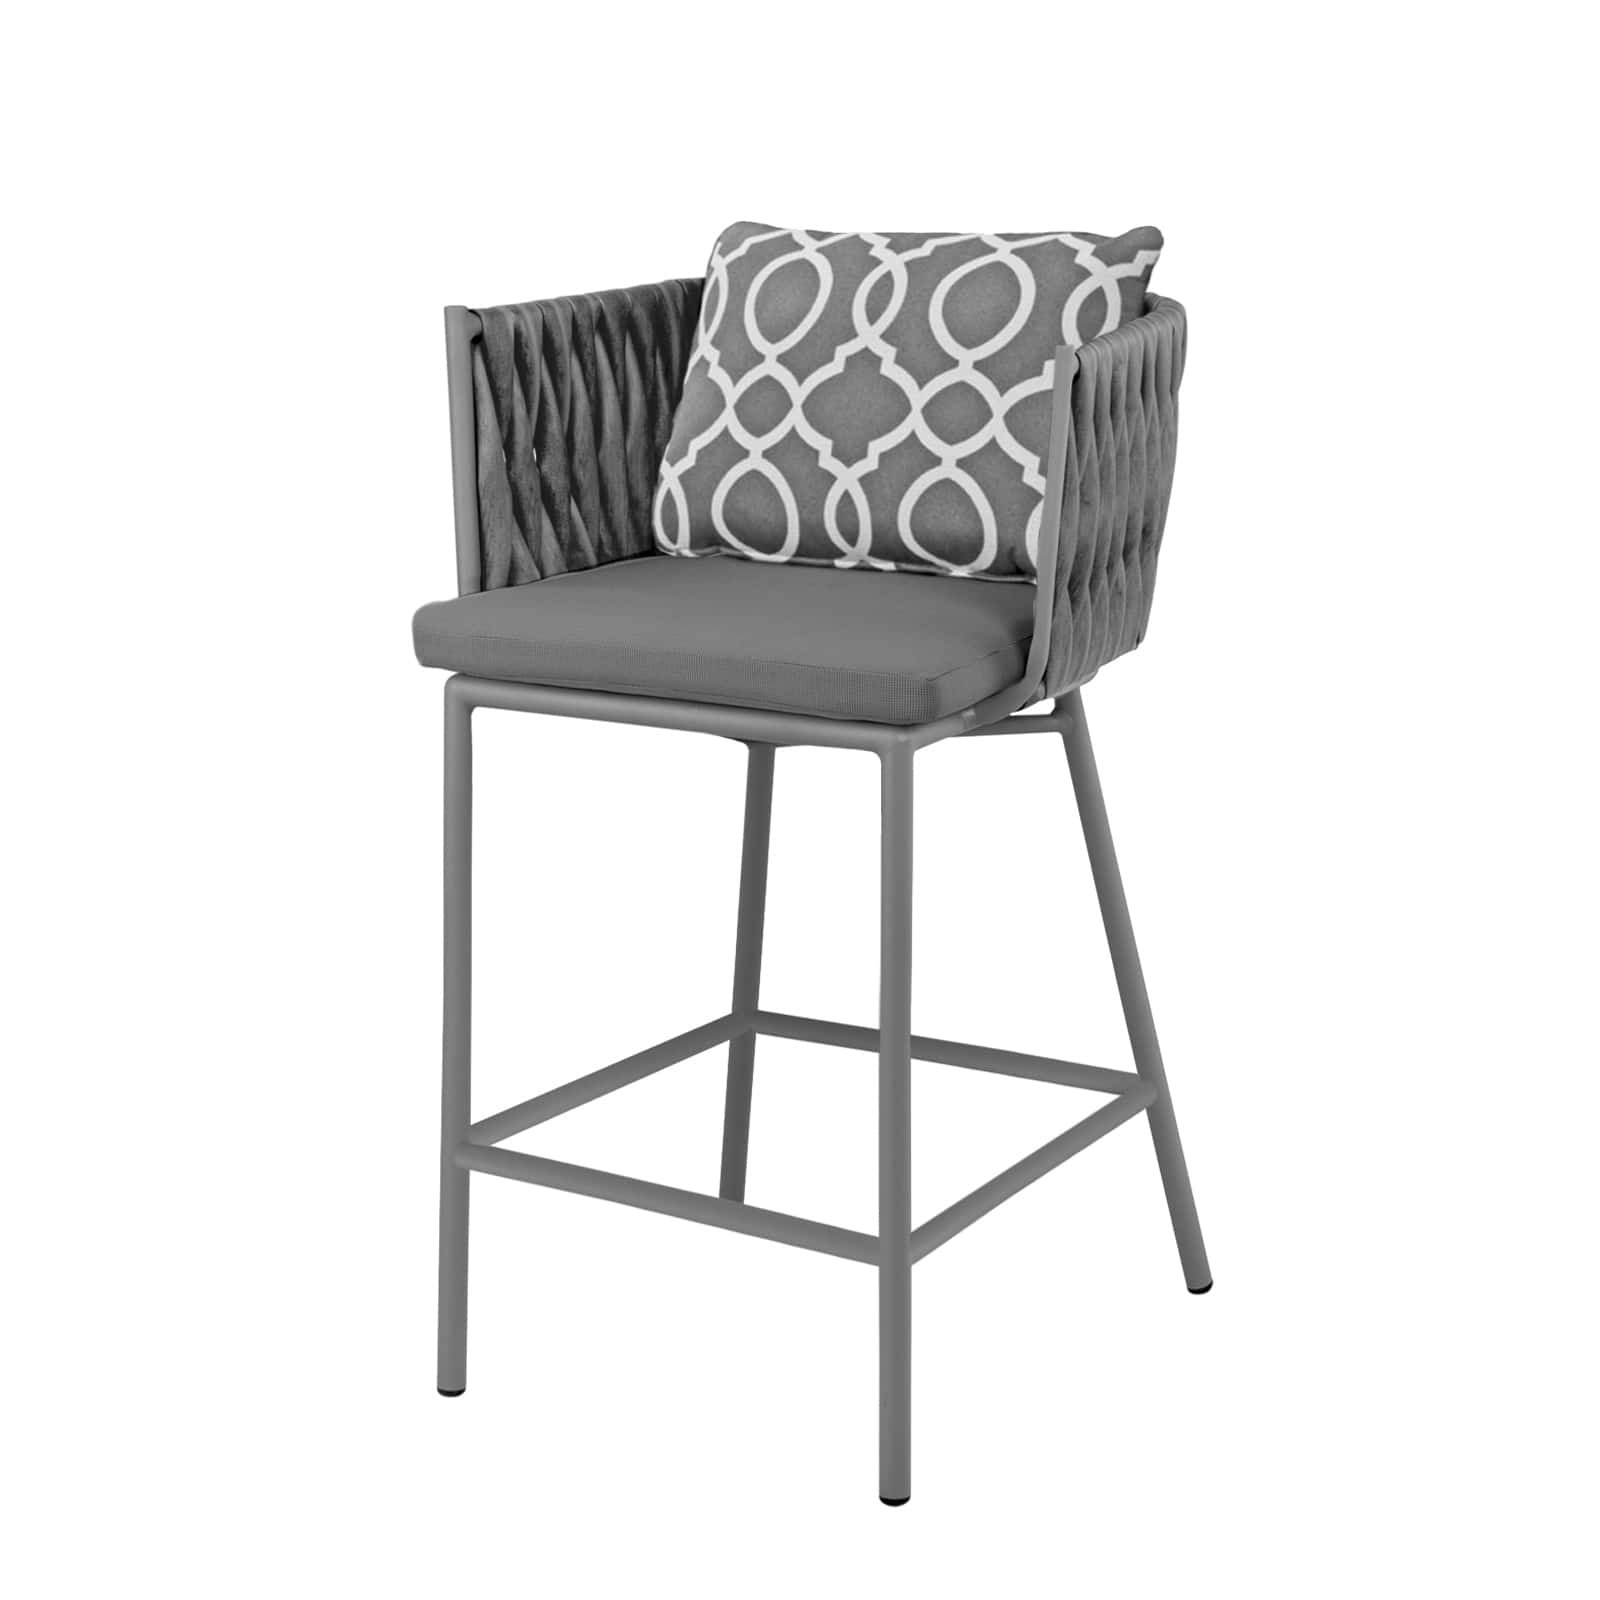 Exceptionnel Source Outdoor Aria Wicker Bar Chair. Kessler Silver With Gray Weave